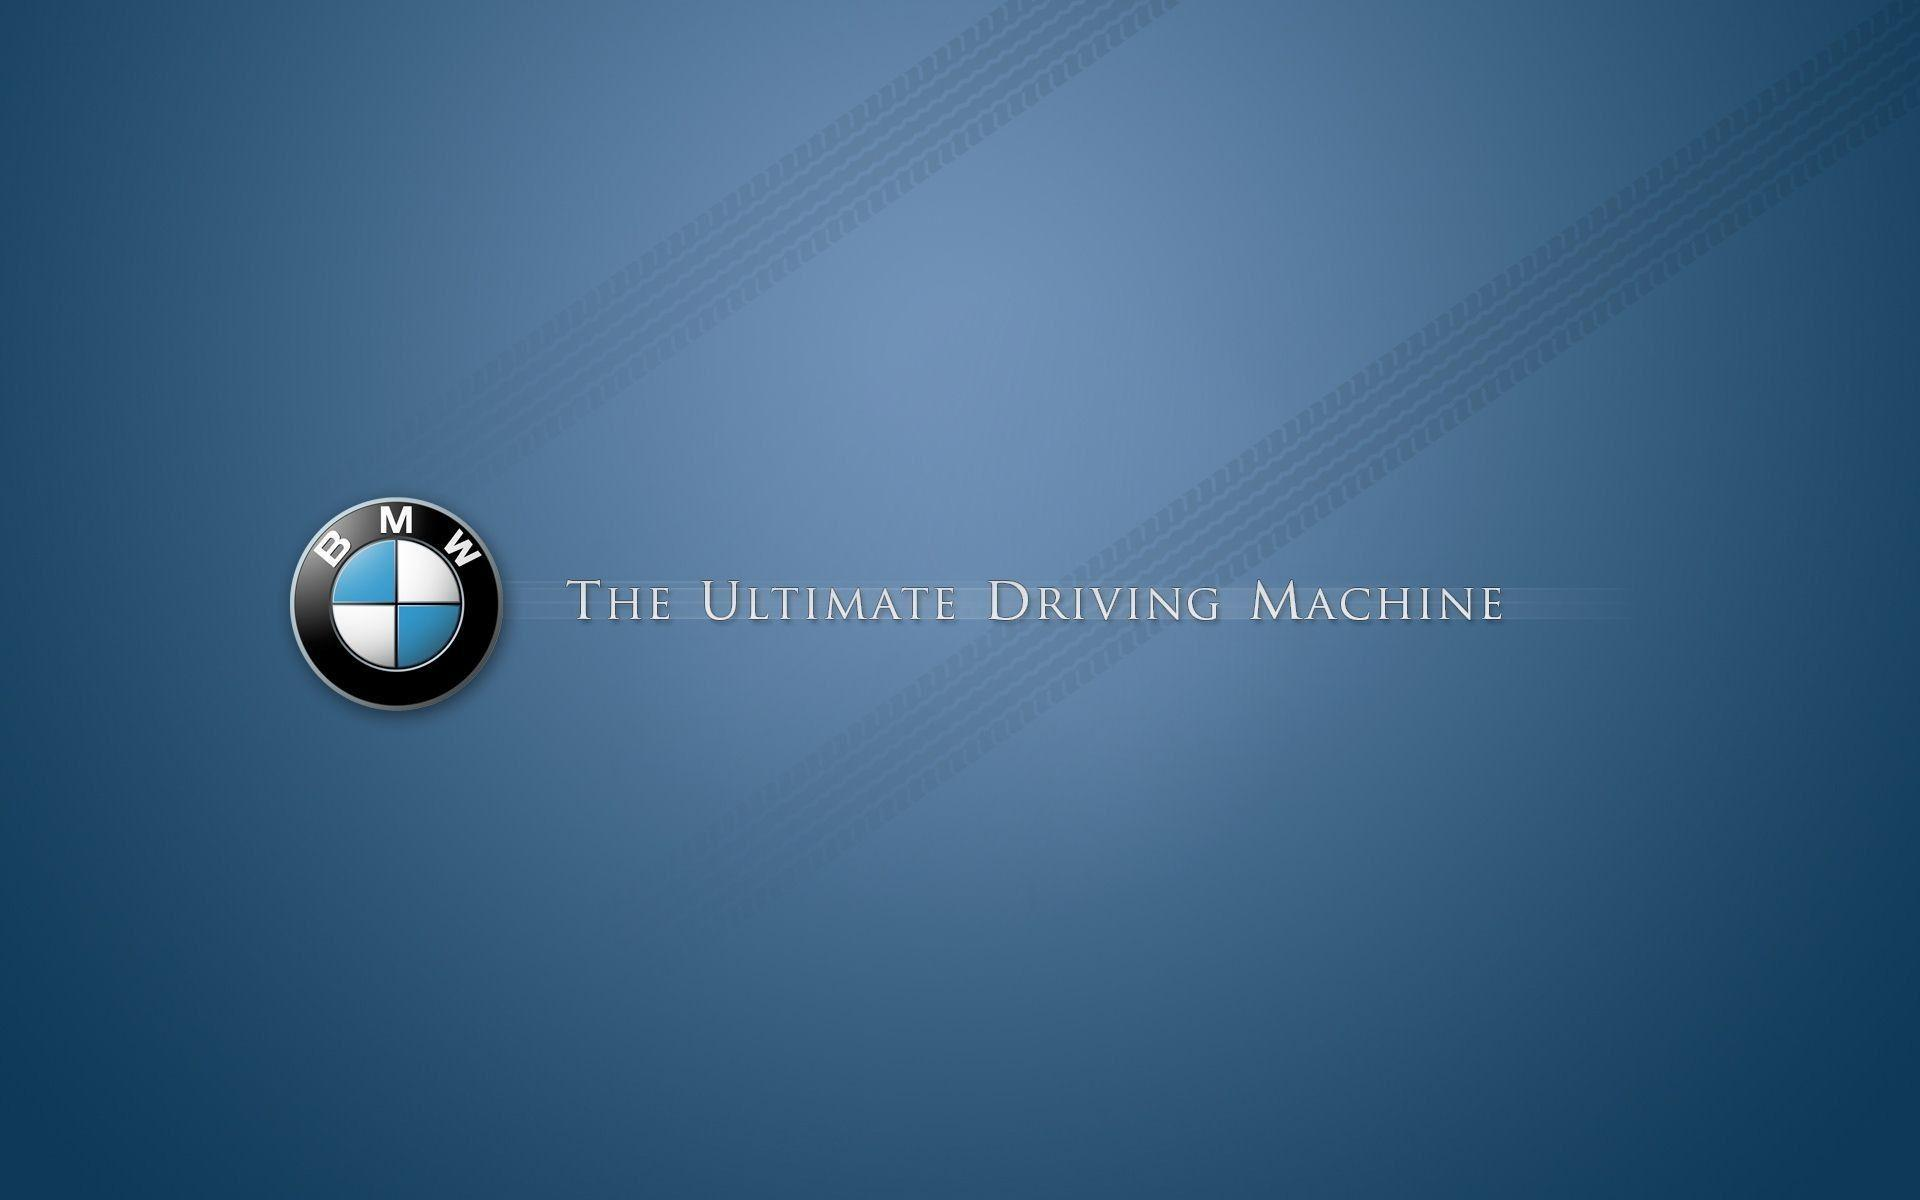 Bmw M Power iPhone Wallpapers Amazing Adorable Bmw M Logo